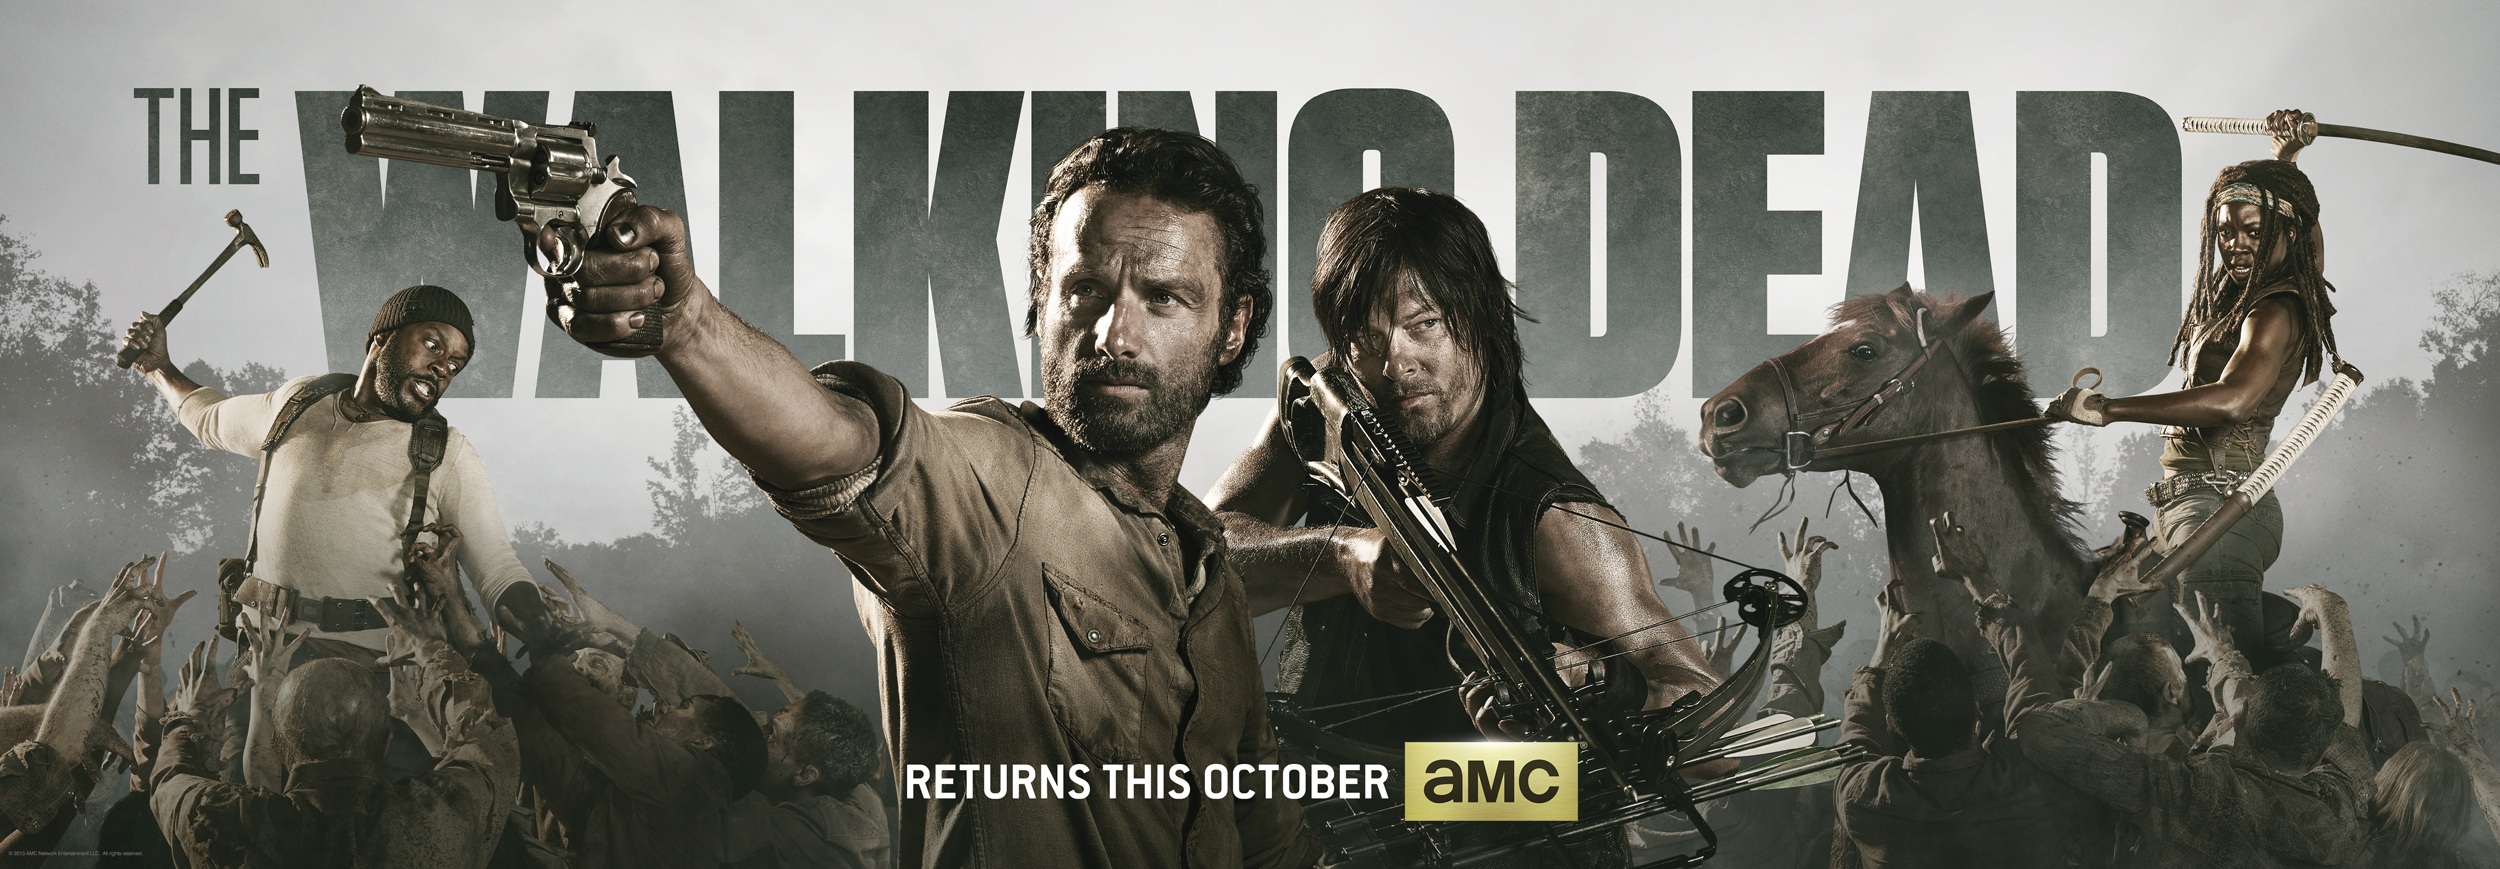 Comic-Con: THE WALKING DEAD Panel Recap and Season 4 Trailer; Cast and